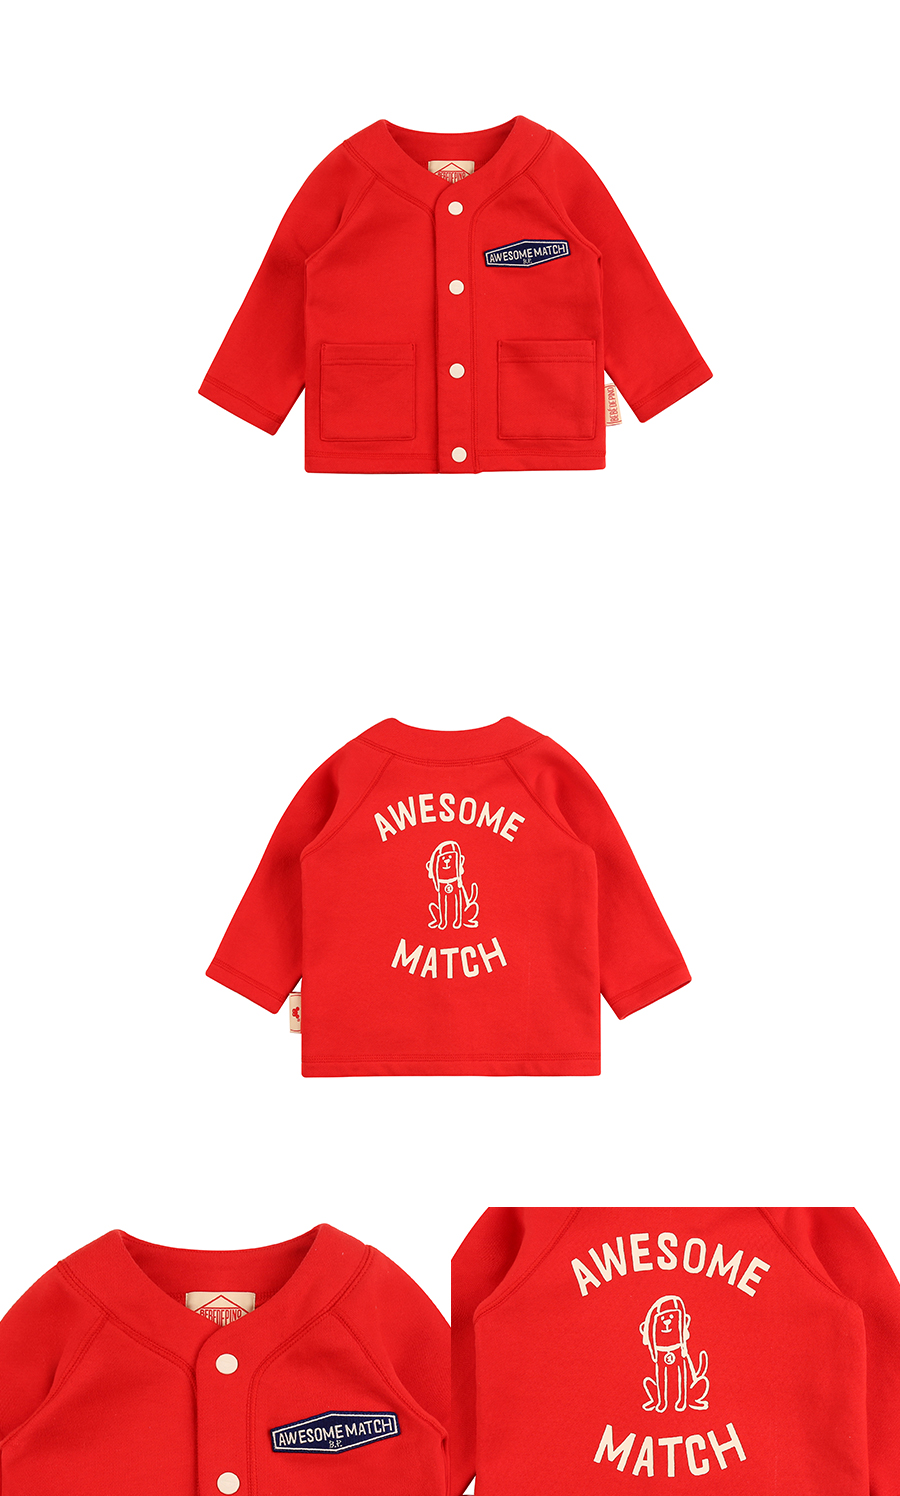 Awesome match baby cardigan 상세 이미지